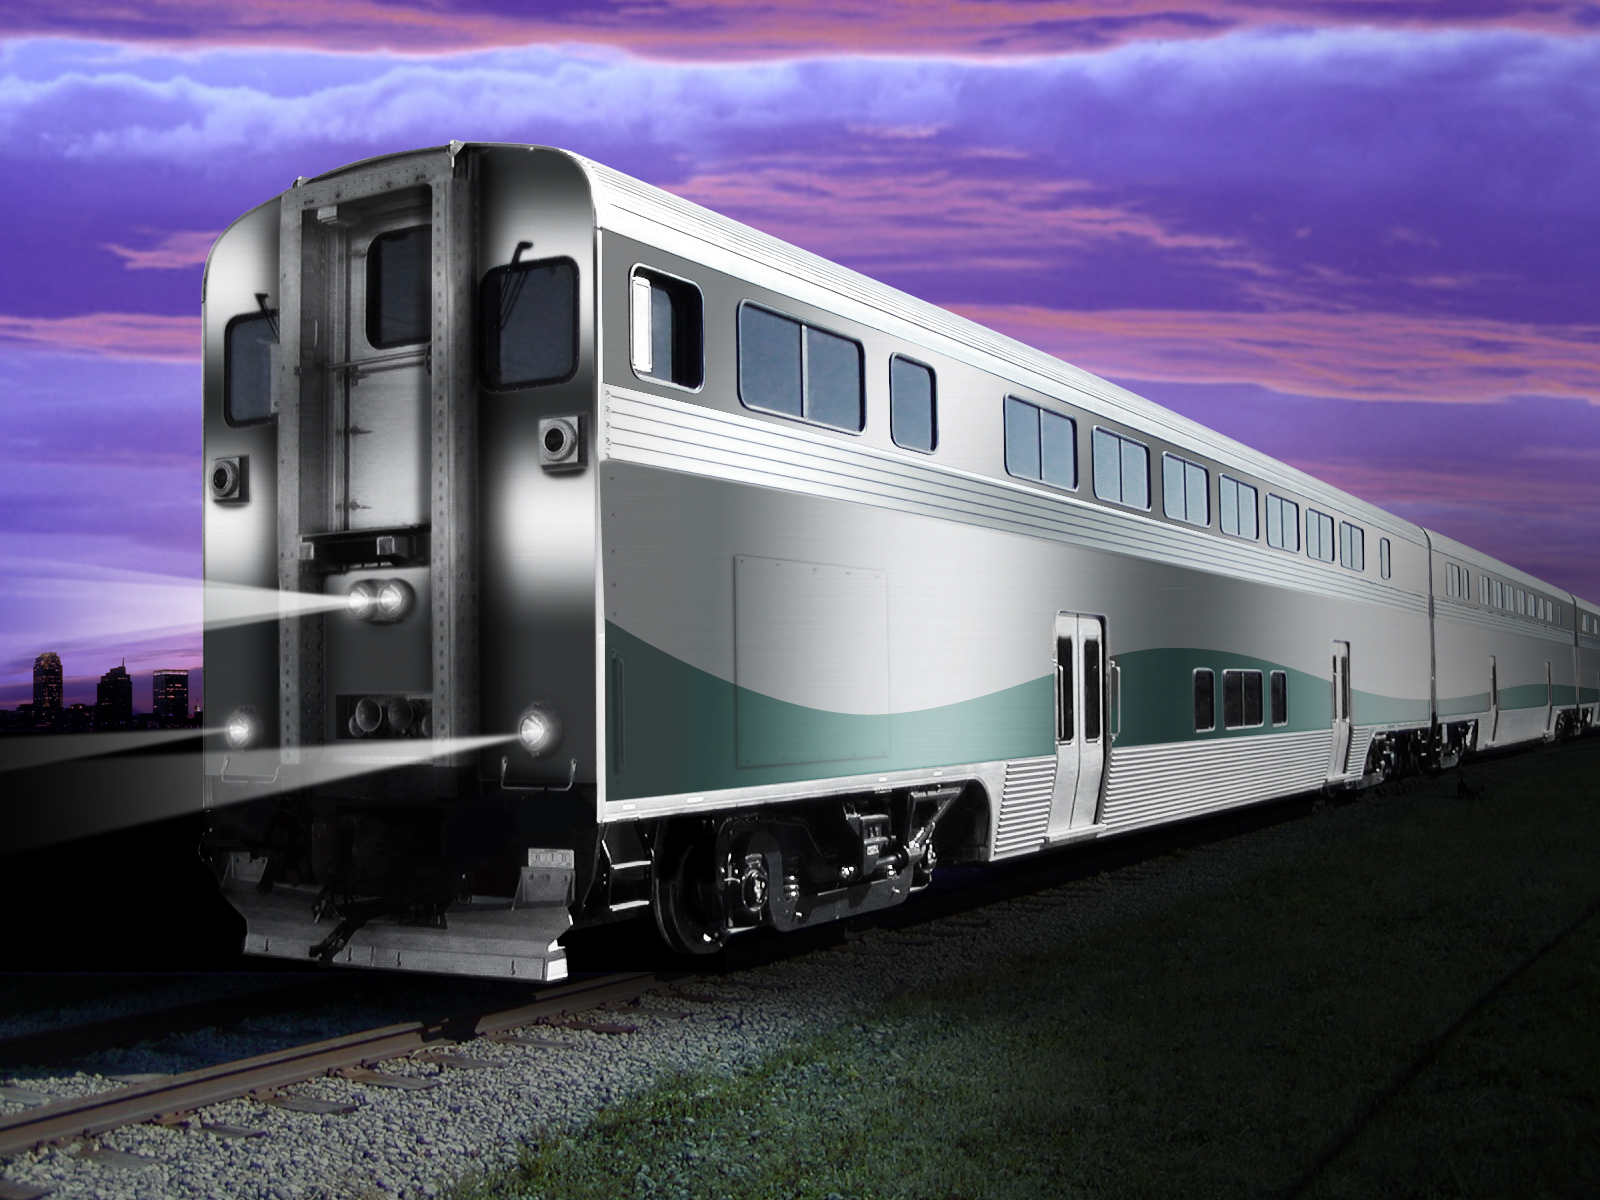 Rendering of the new bi-level cab car